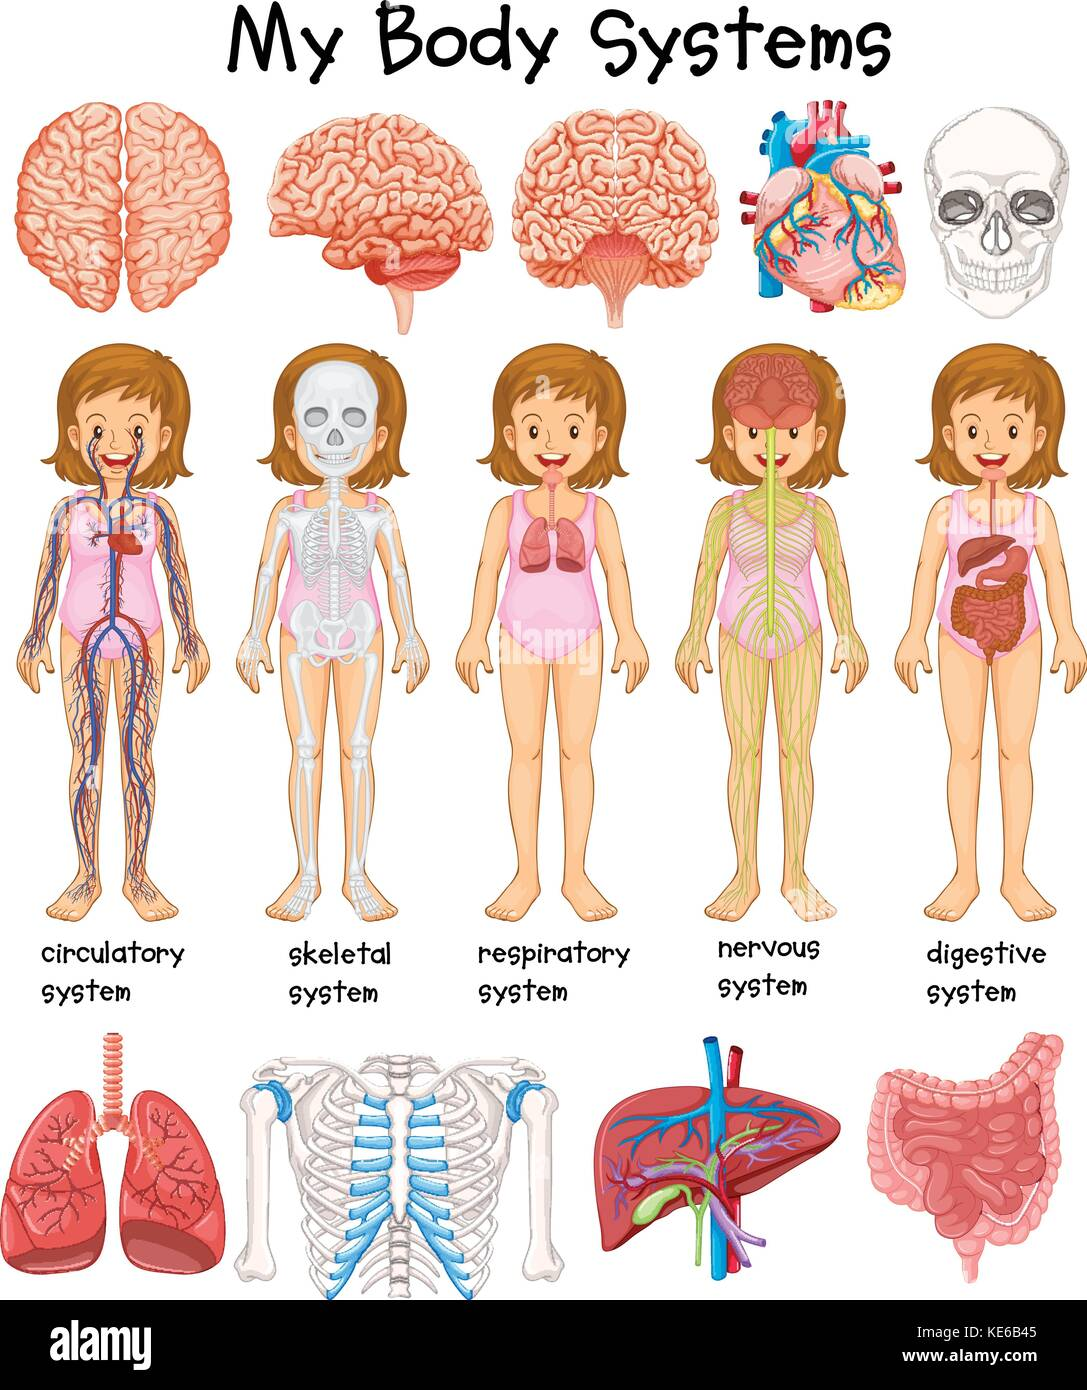 hight resolution of human body systems diagram illustration